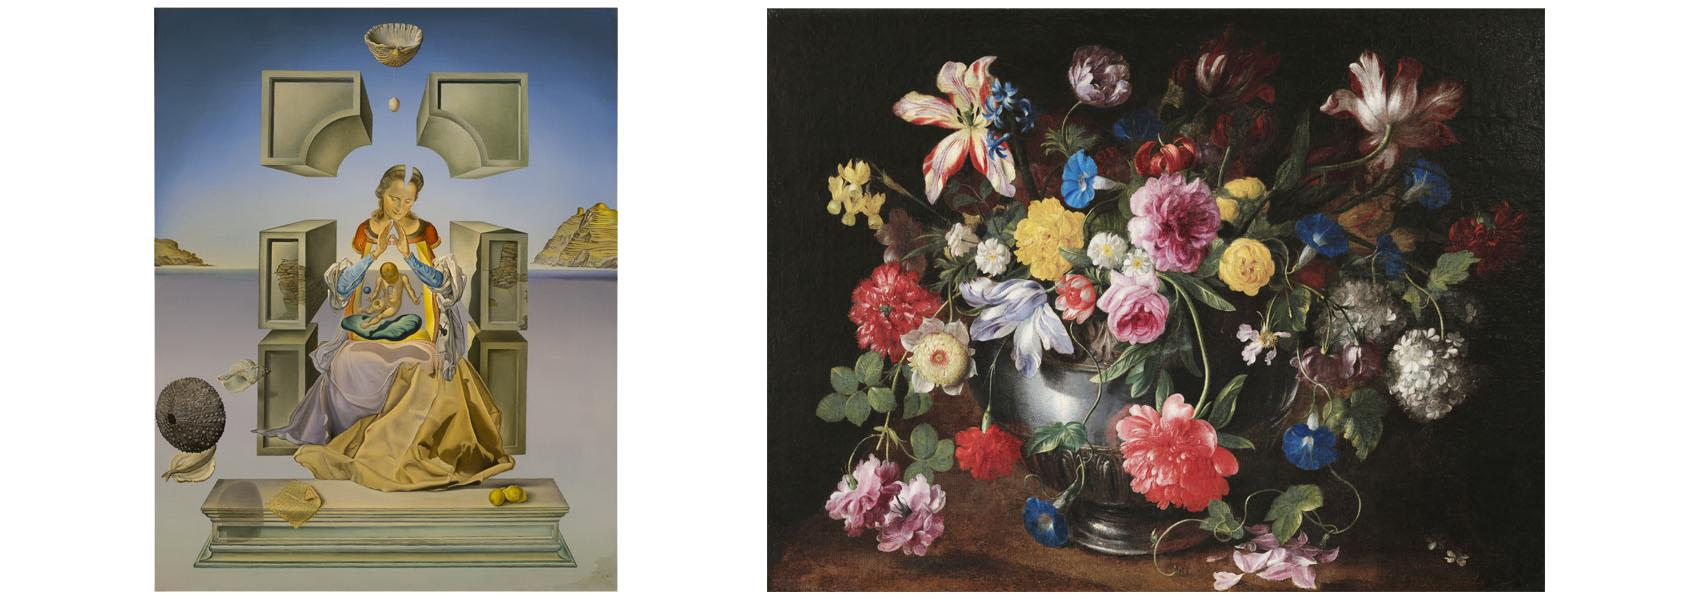 Salvador Dali Spanish, 1904 - 1989 Madonna of Port Lligat, 1949 Oil on canvas 59.9  Gift of Mr. and Mrs. Ira Haupt Collection of the Haggerty Museum of Art, Marquette University  Attributed to Nicolas Baudesson French, 1611 - 1680 Still Life With Flowers, 1600s Oil on panel 66.11  Gift of Ms. Paula Uihlein Collection of the Haggerty Museum of Art, Marquette University